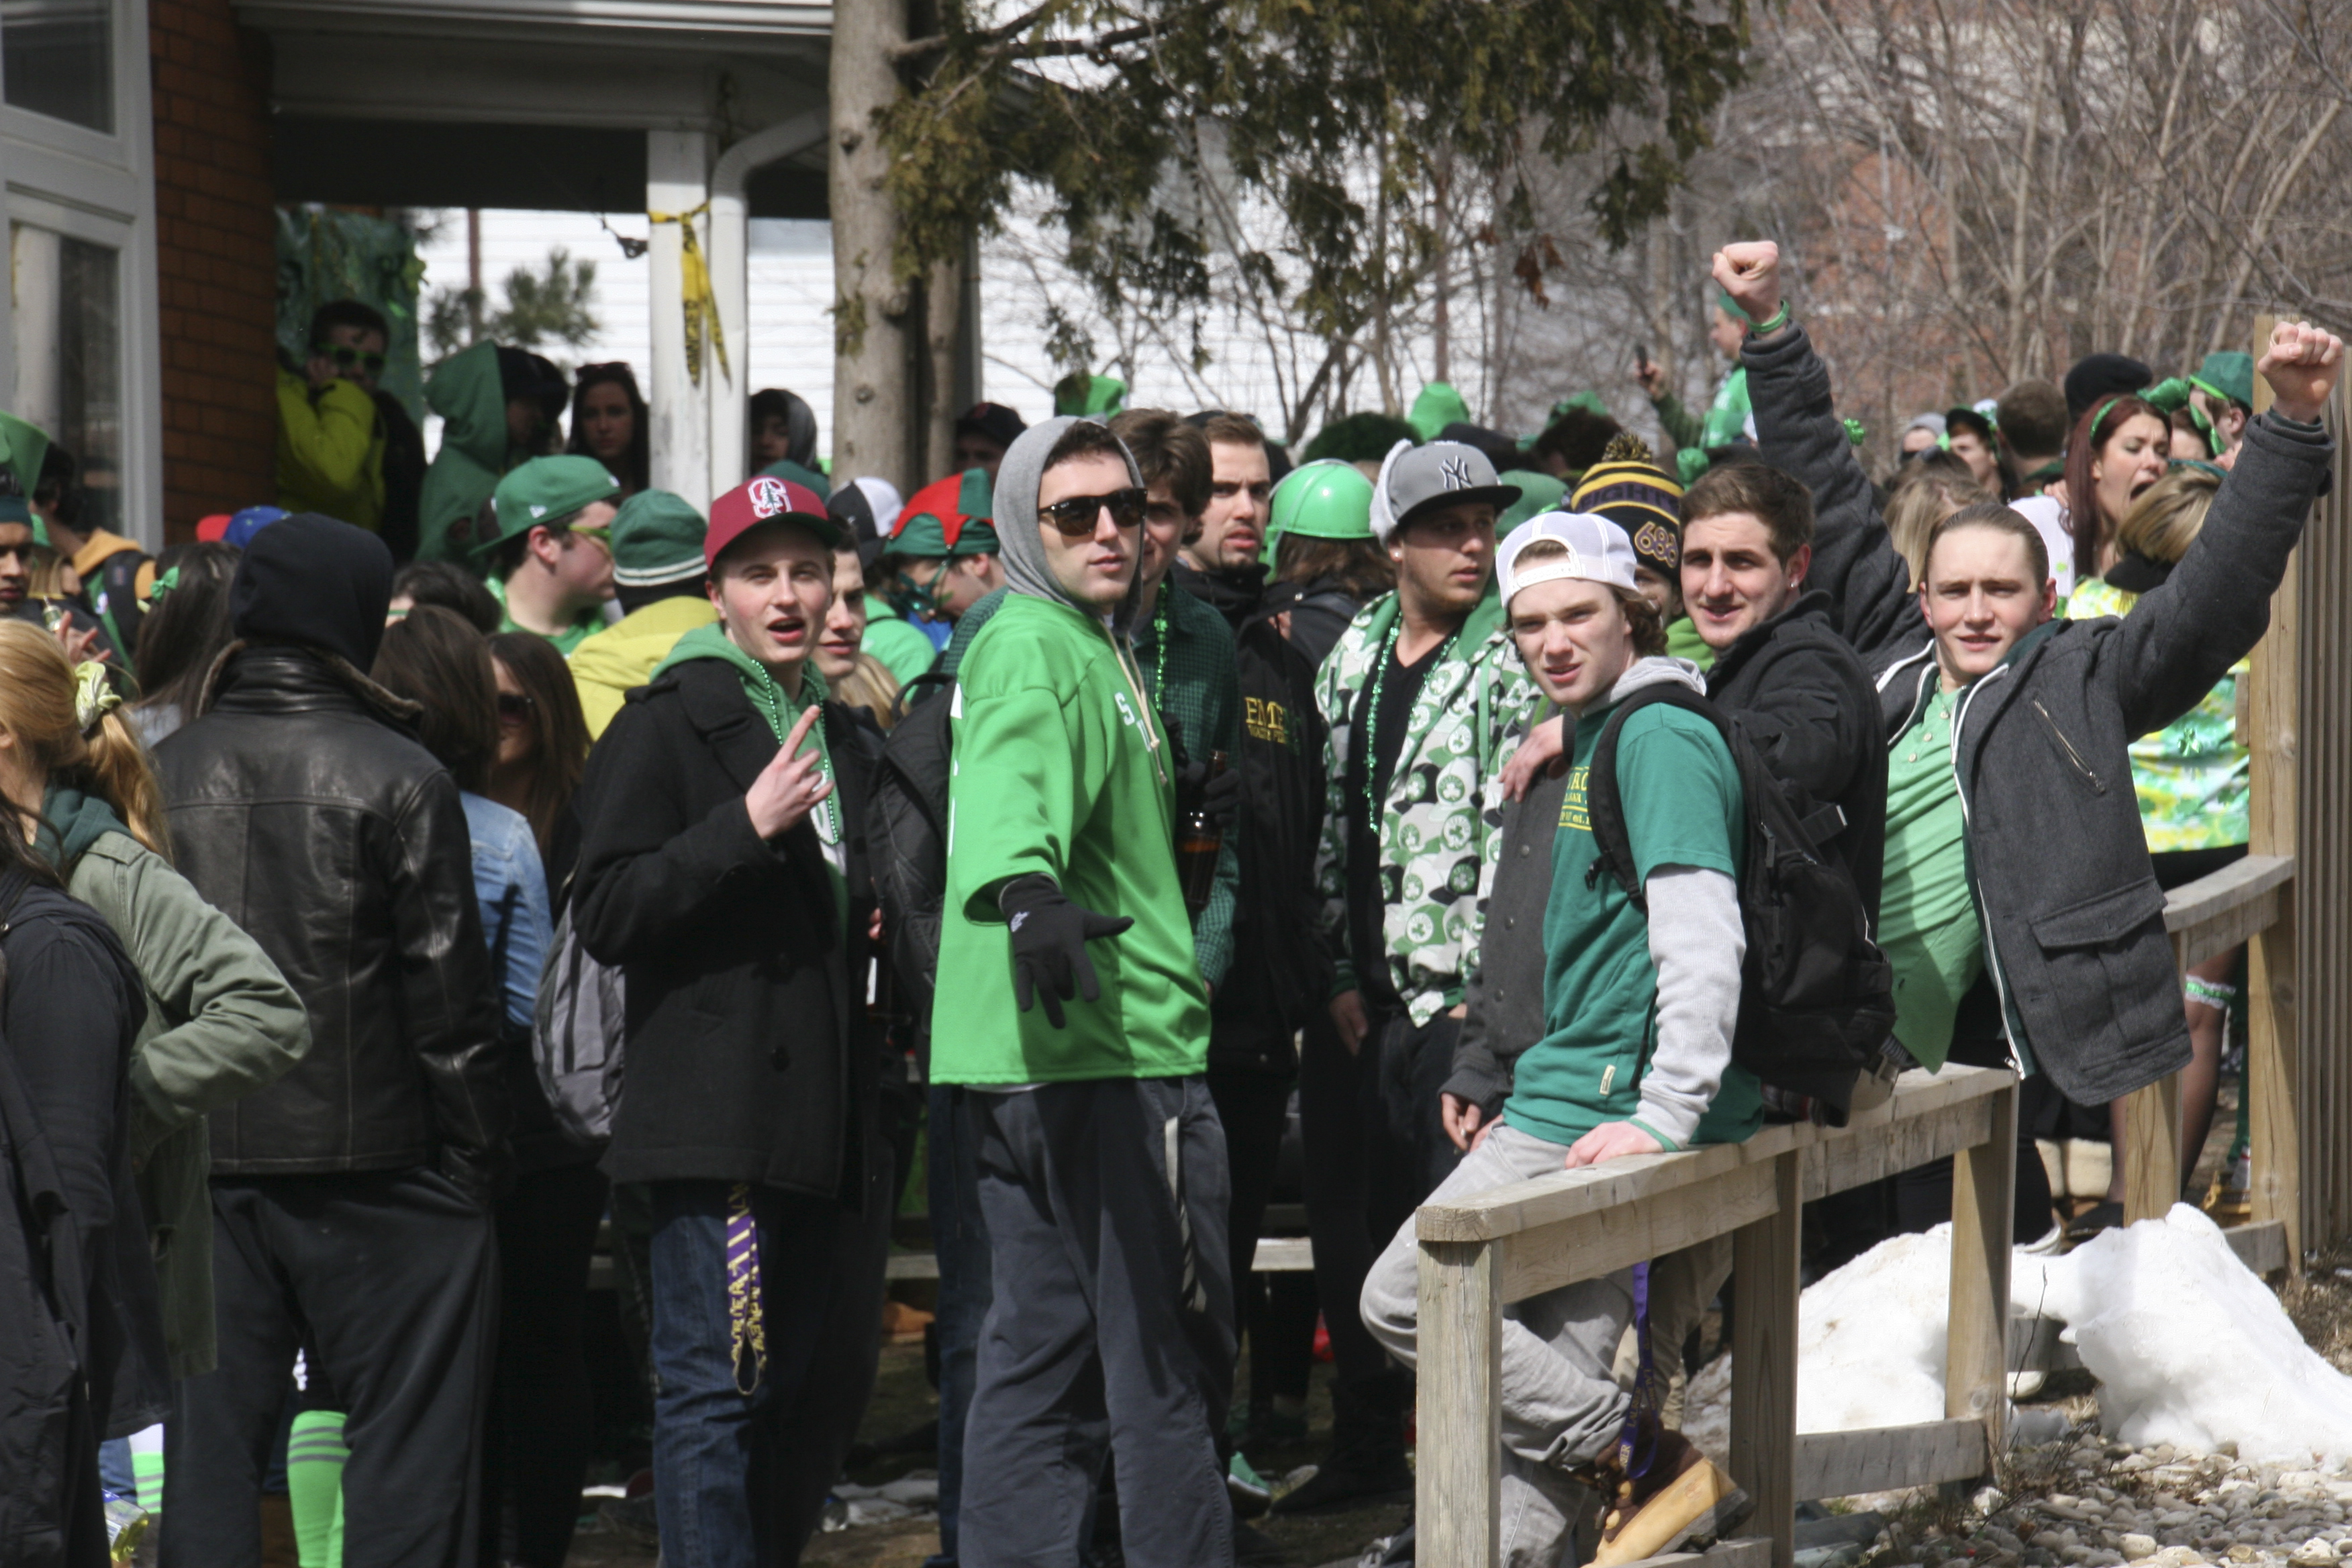 St. Patrick's Day stirs controversy at Laurier